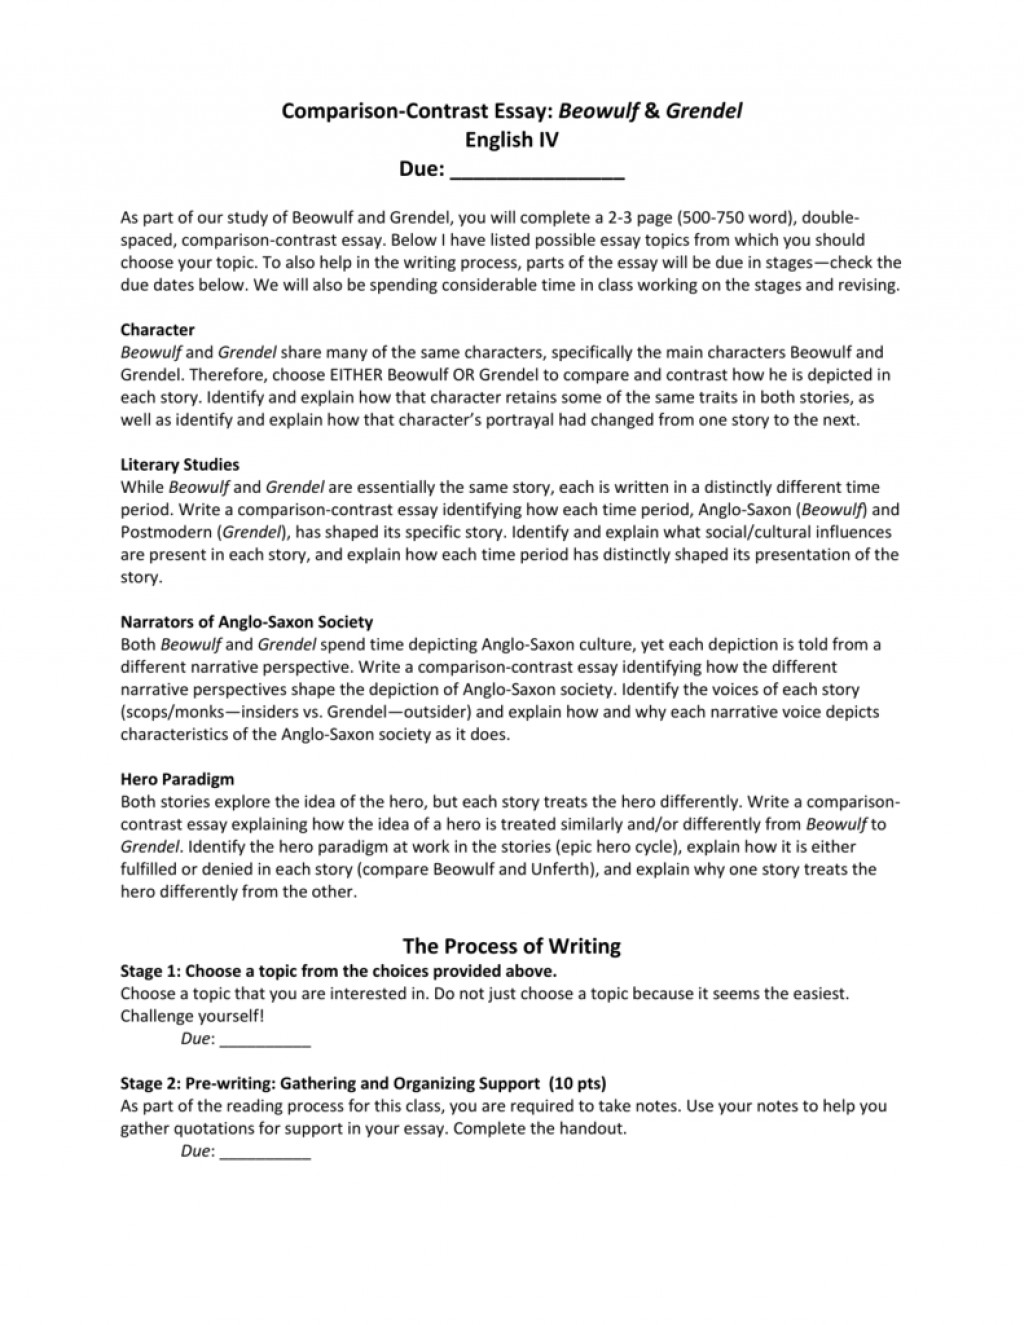 013 Essay Example Compare And Contrast Essays 008061732 1 Awful Free Examples For College Topics Middle School Large